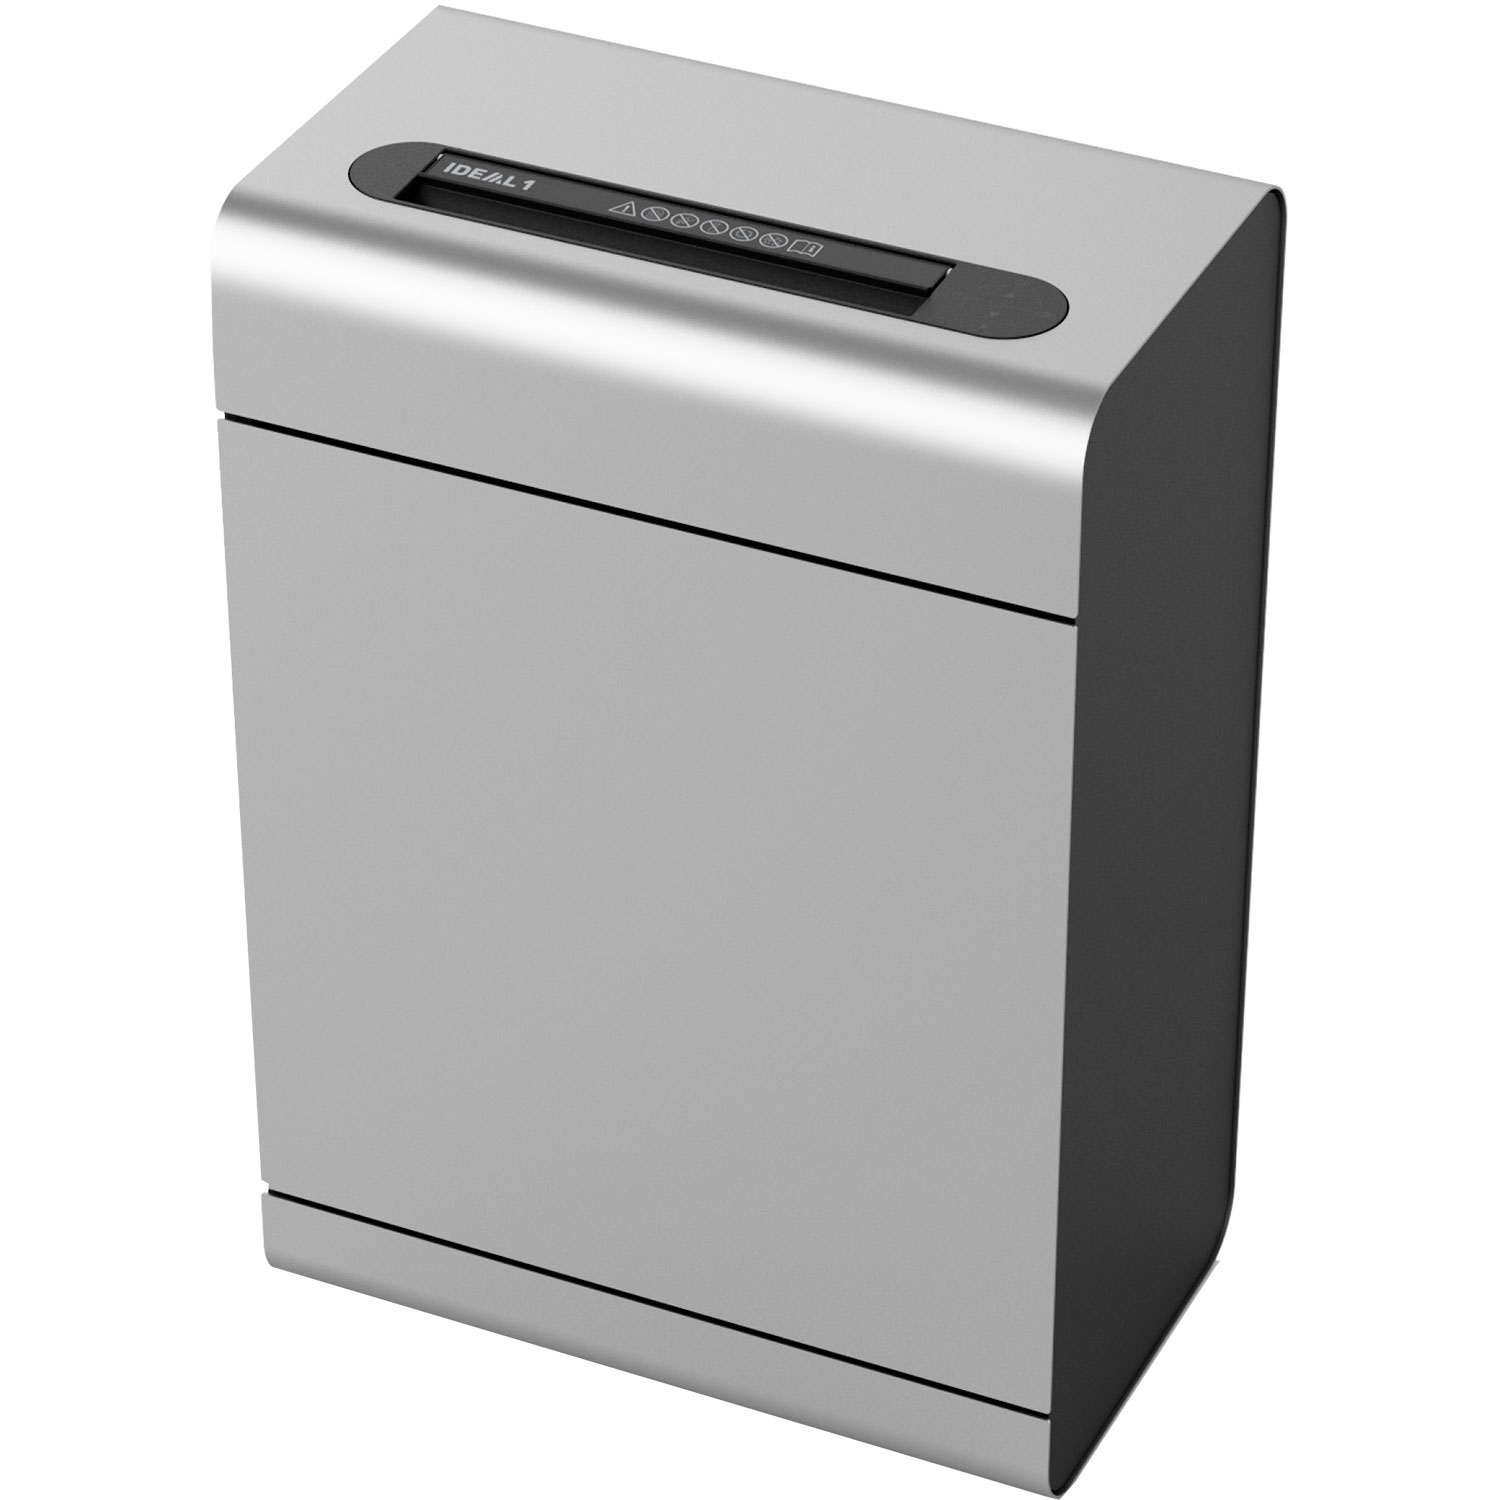 IDEAL 1 Exclusive 2 x 15mm Cross Cut Deskside Paper Shredder